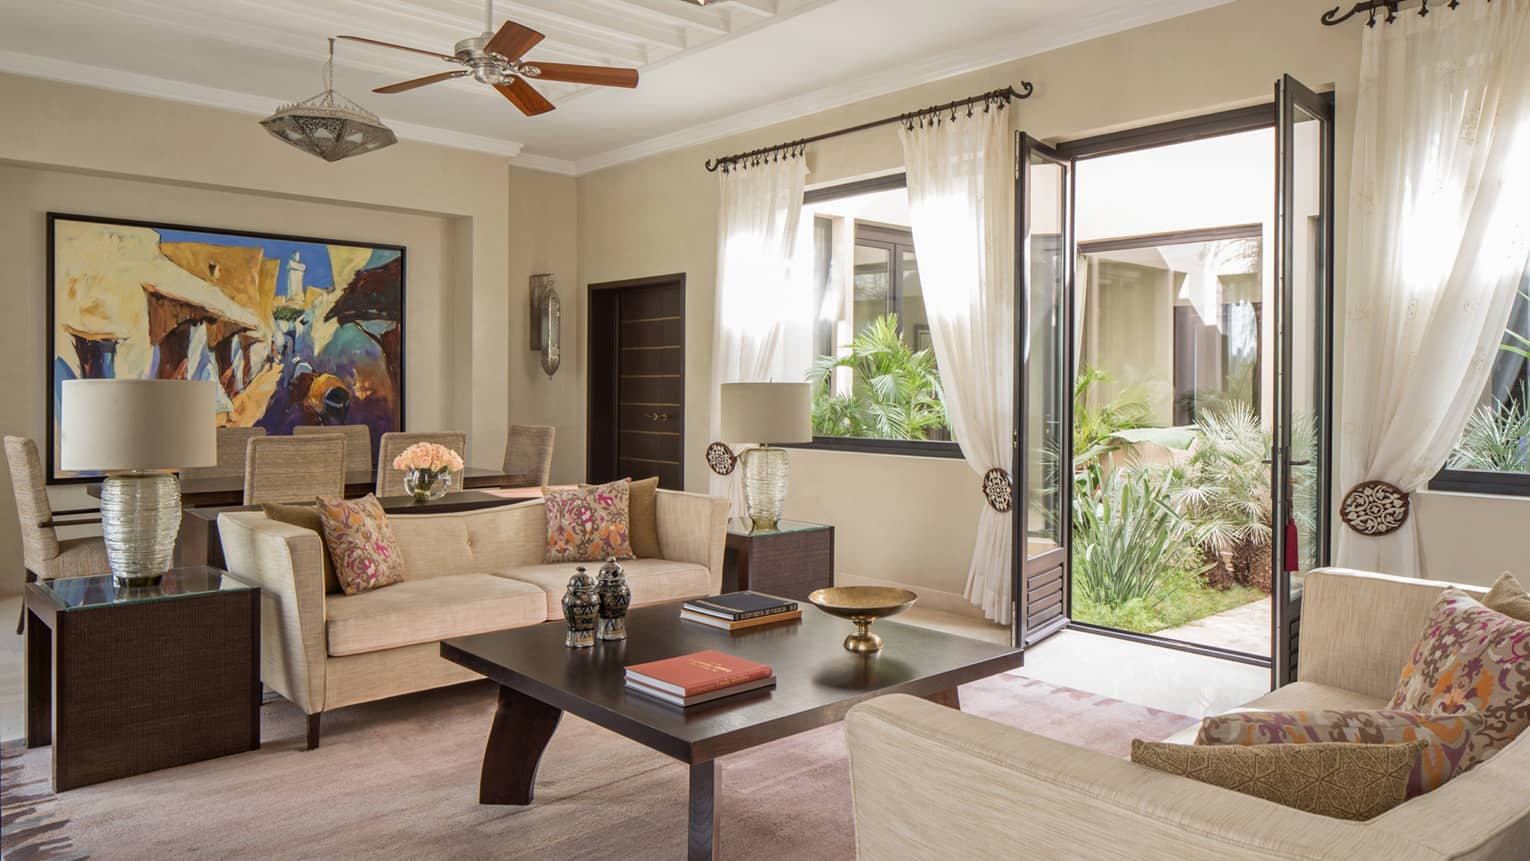 Two Bedroom Villa living room with two sofas around large coffee table with books, dining table, large colourful painting